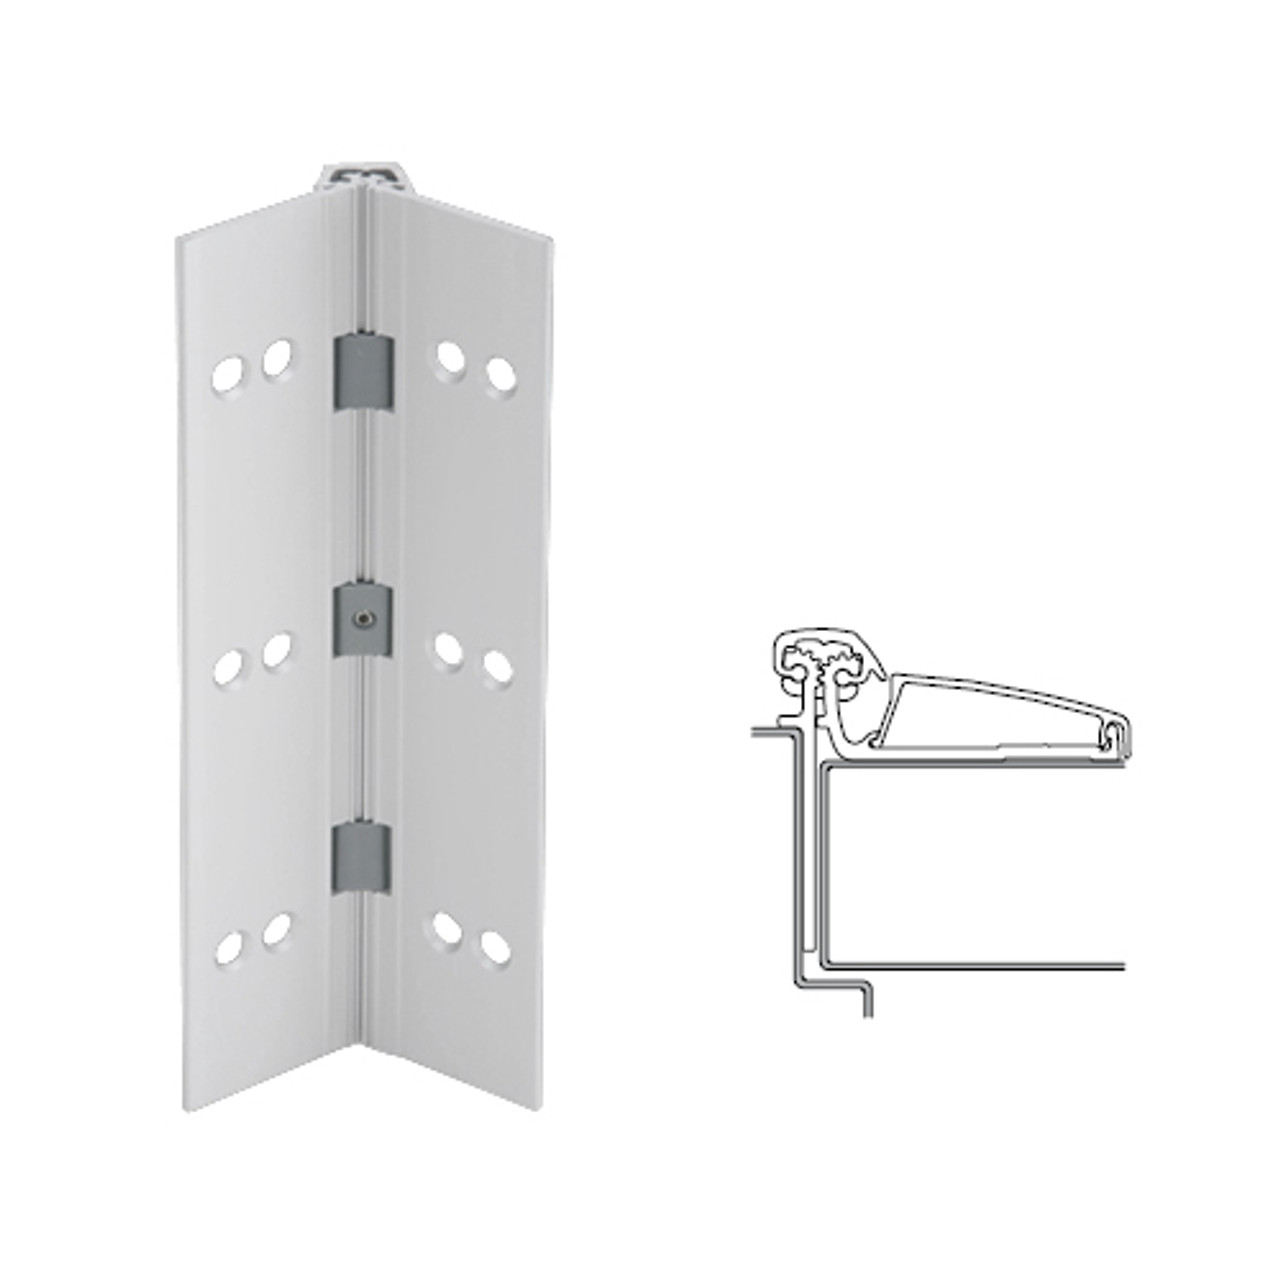 046XY-US28-95-TF IVES Adjustable Half Surface Continuous Geared Hinges with Thread Forming Screws in Satin Aluminum